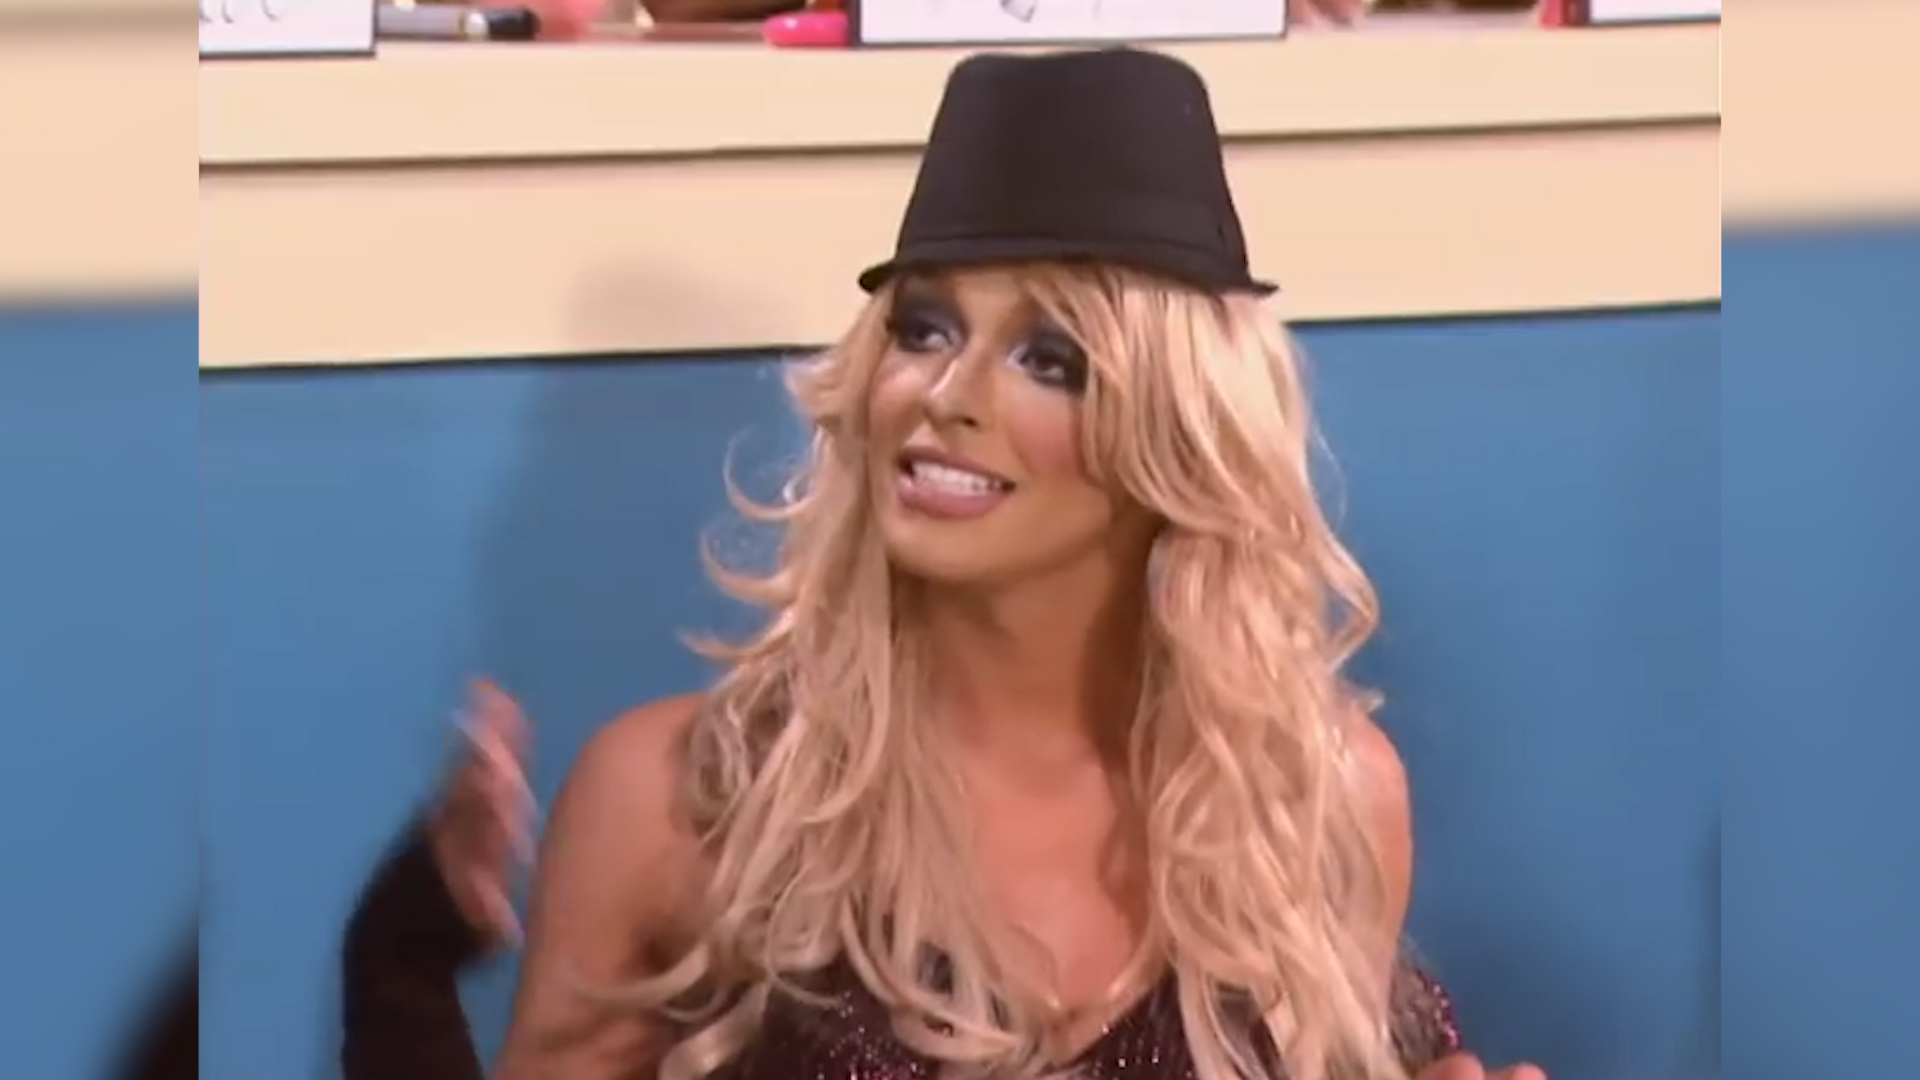 RuPaul's Drag Race: Tatianna plays Britney Spears